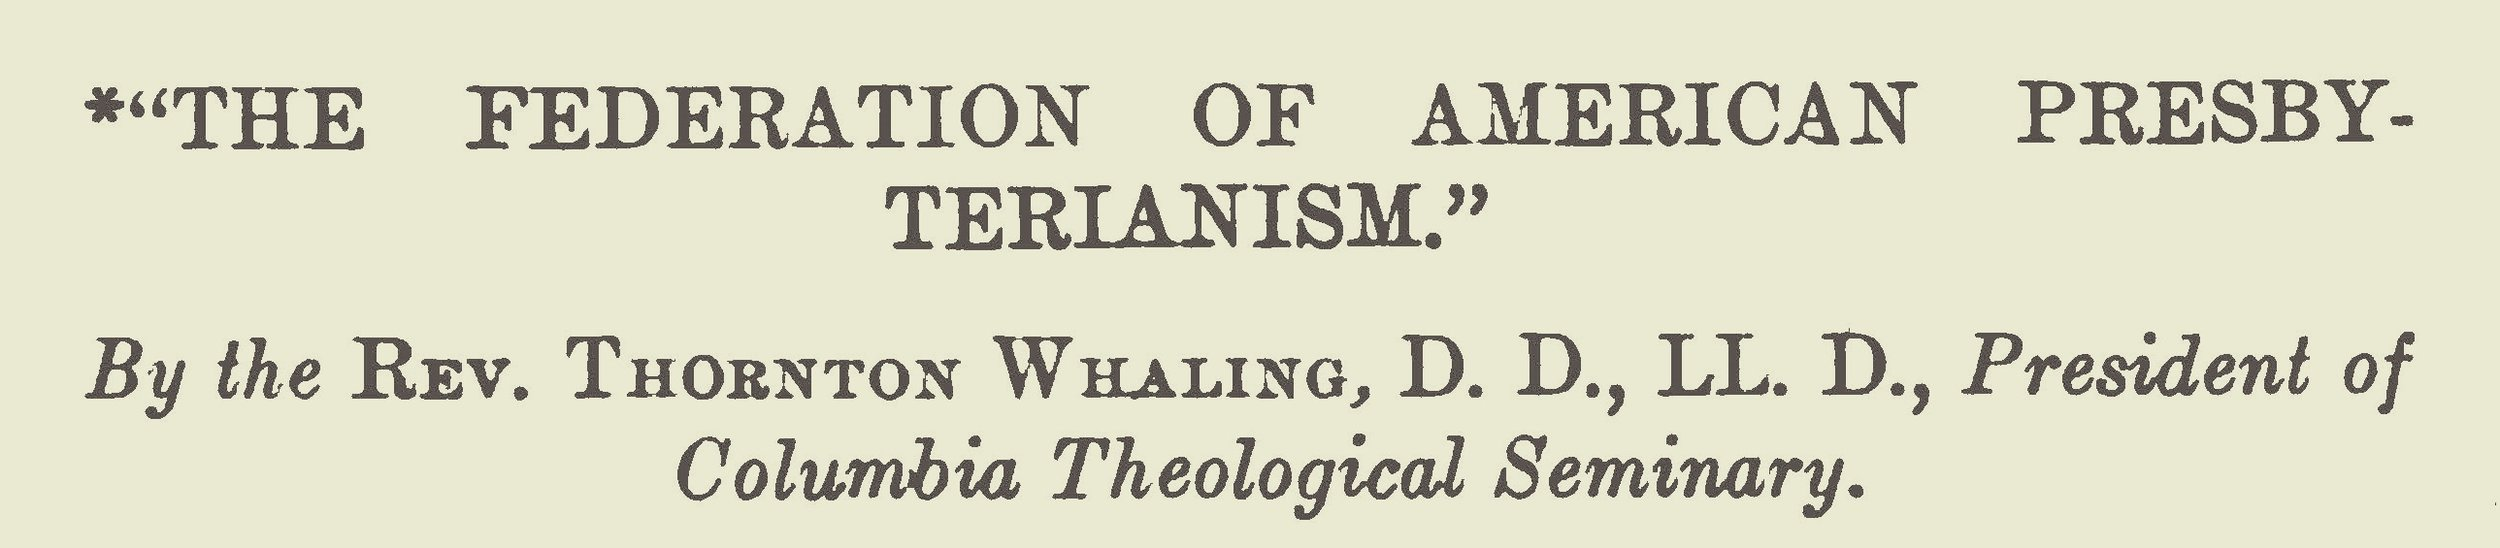 Whaling, Thornton C., The Federation of American Presbyterianism Title Page.jpg